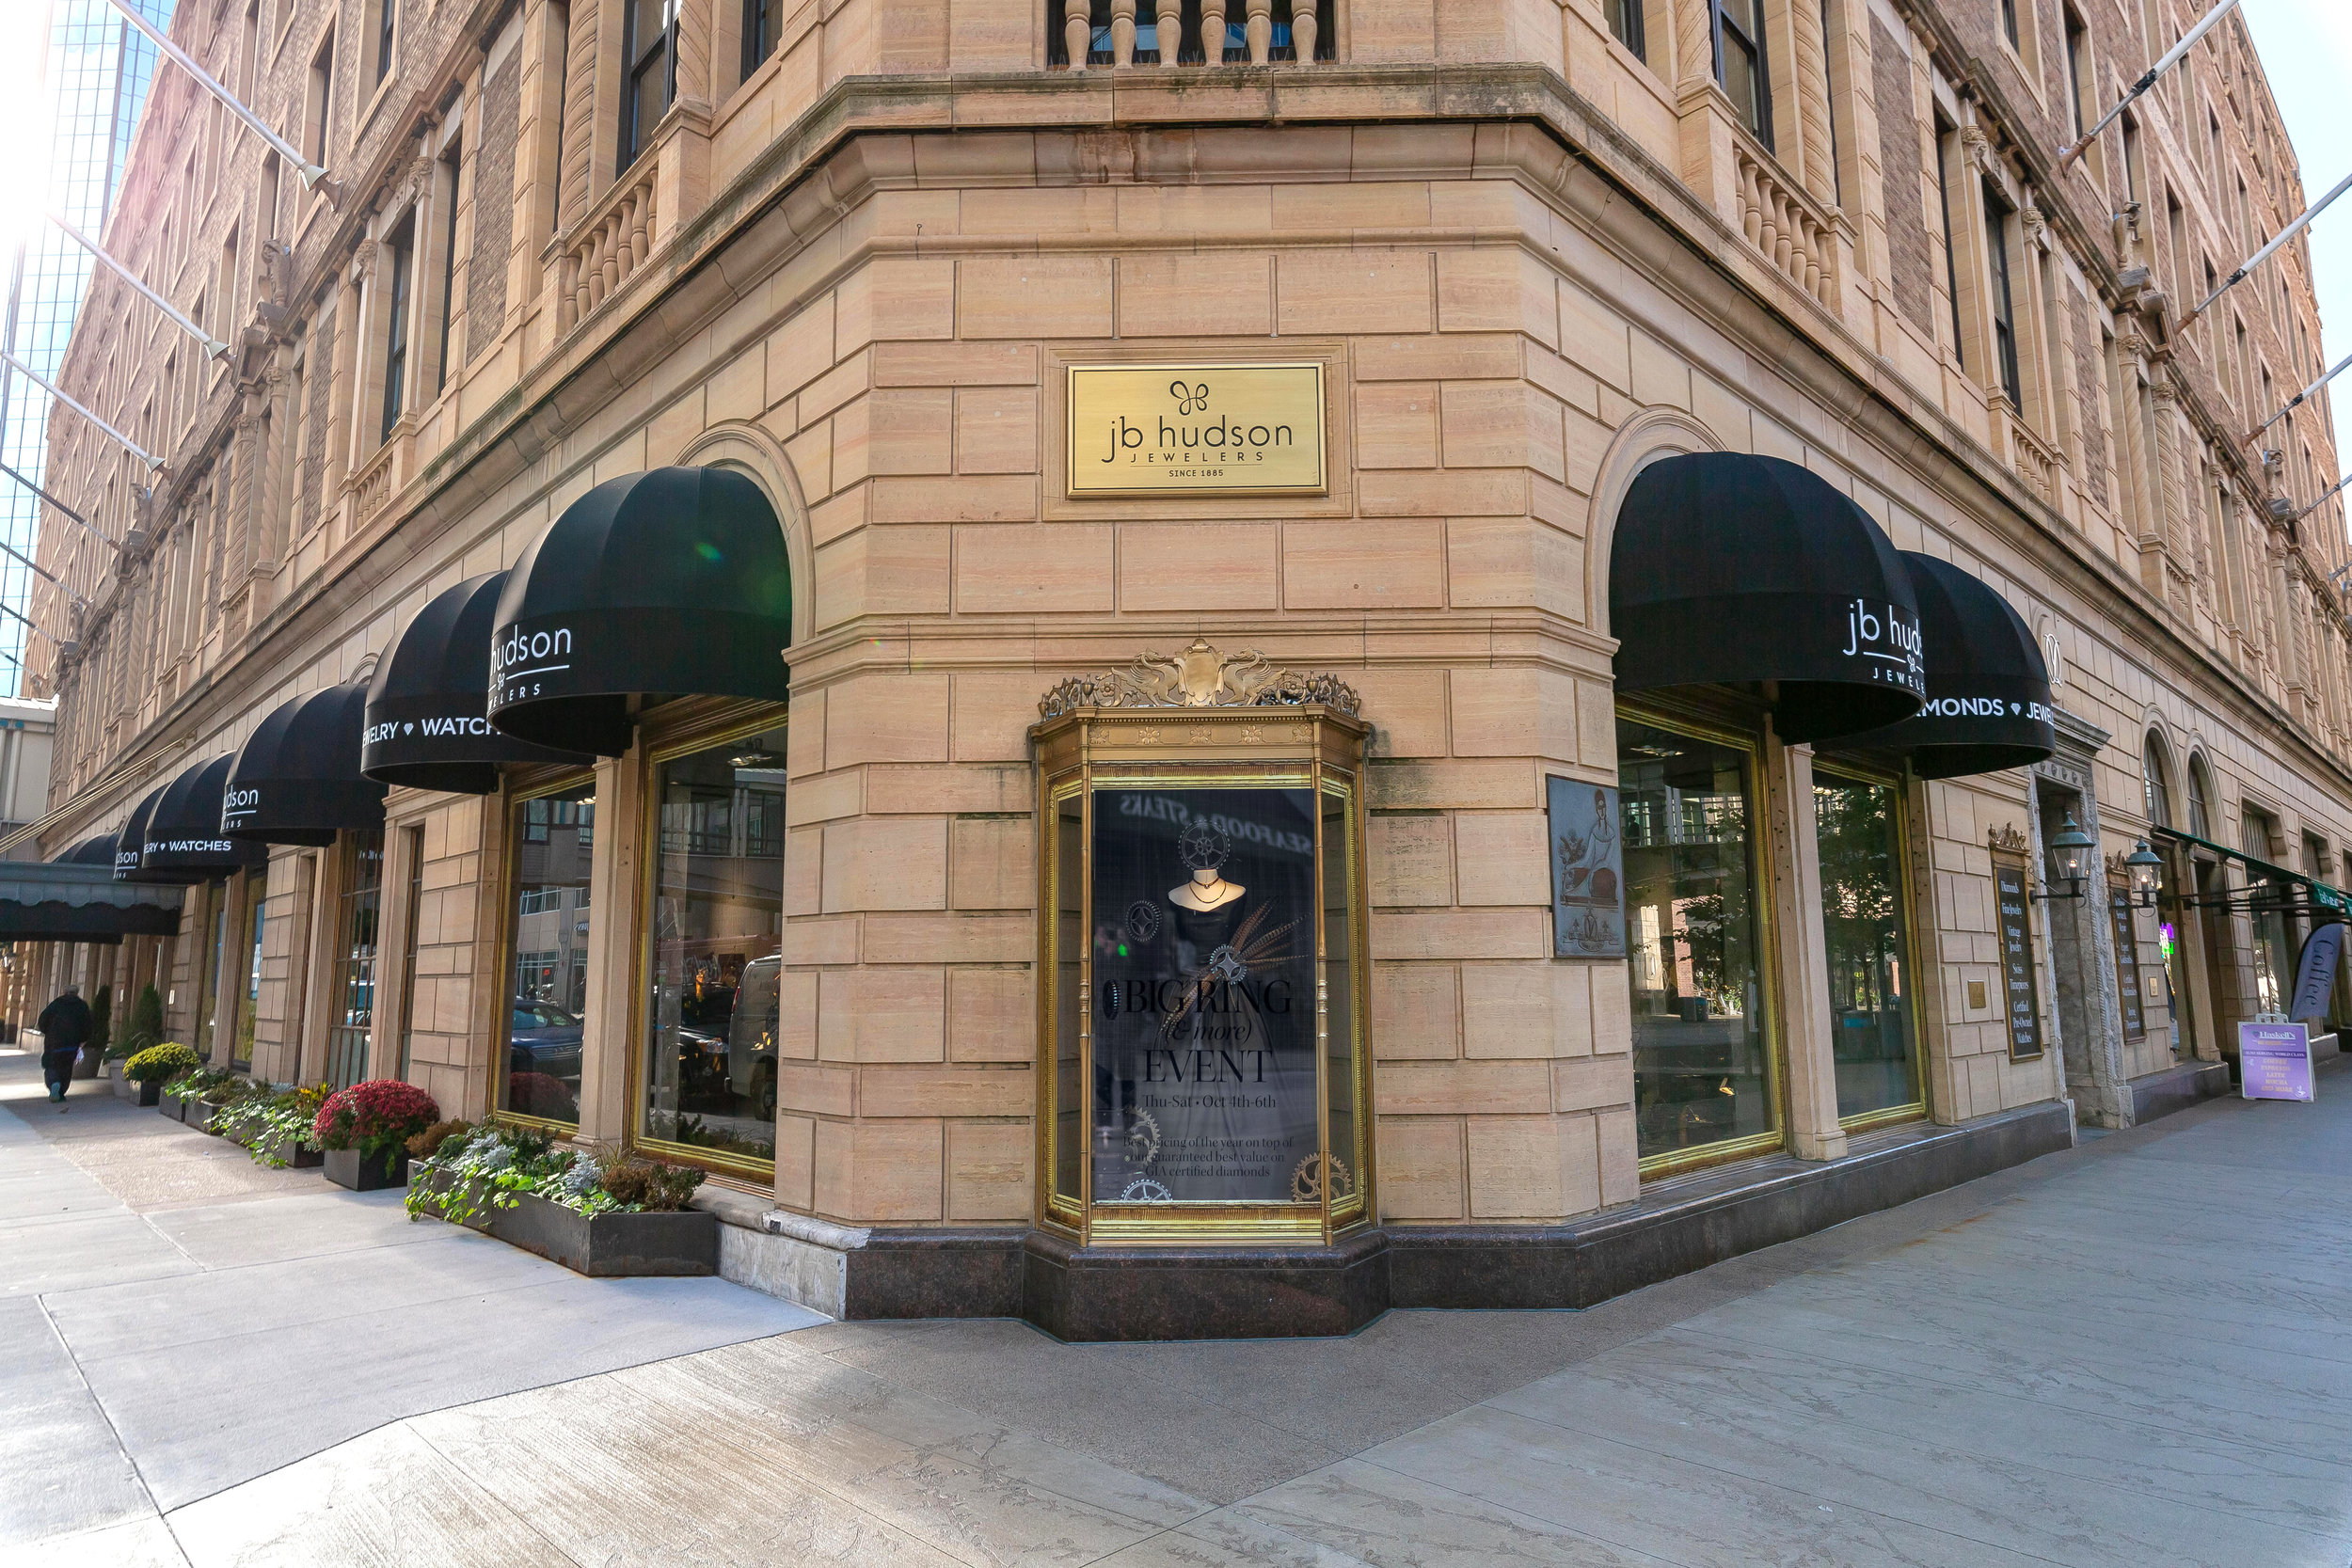 JB Hudson Jewelers - Visit the oldest business in downtown! This premier jeweler since 1885 offers the best in fine jewelry and watches. The store features historic architecture including an impressive staircase and original jewelry cases and light fixtures. See vintage jewelry, amazing window displays and demos with an in-house watchmaker! Coloring books for kids.